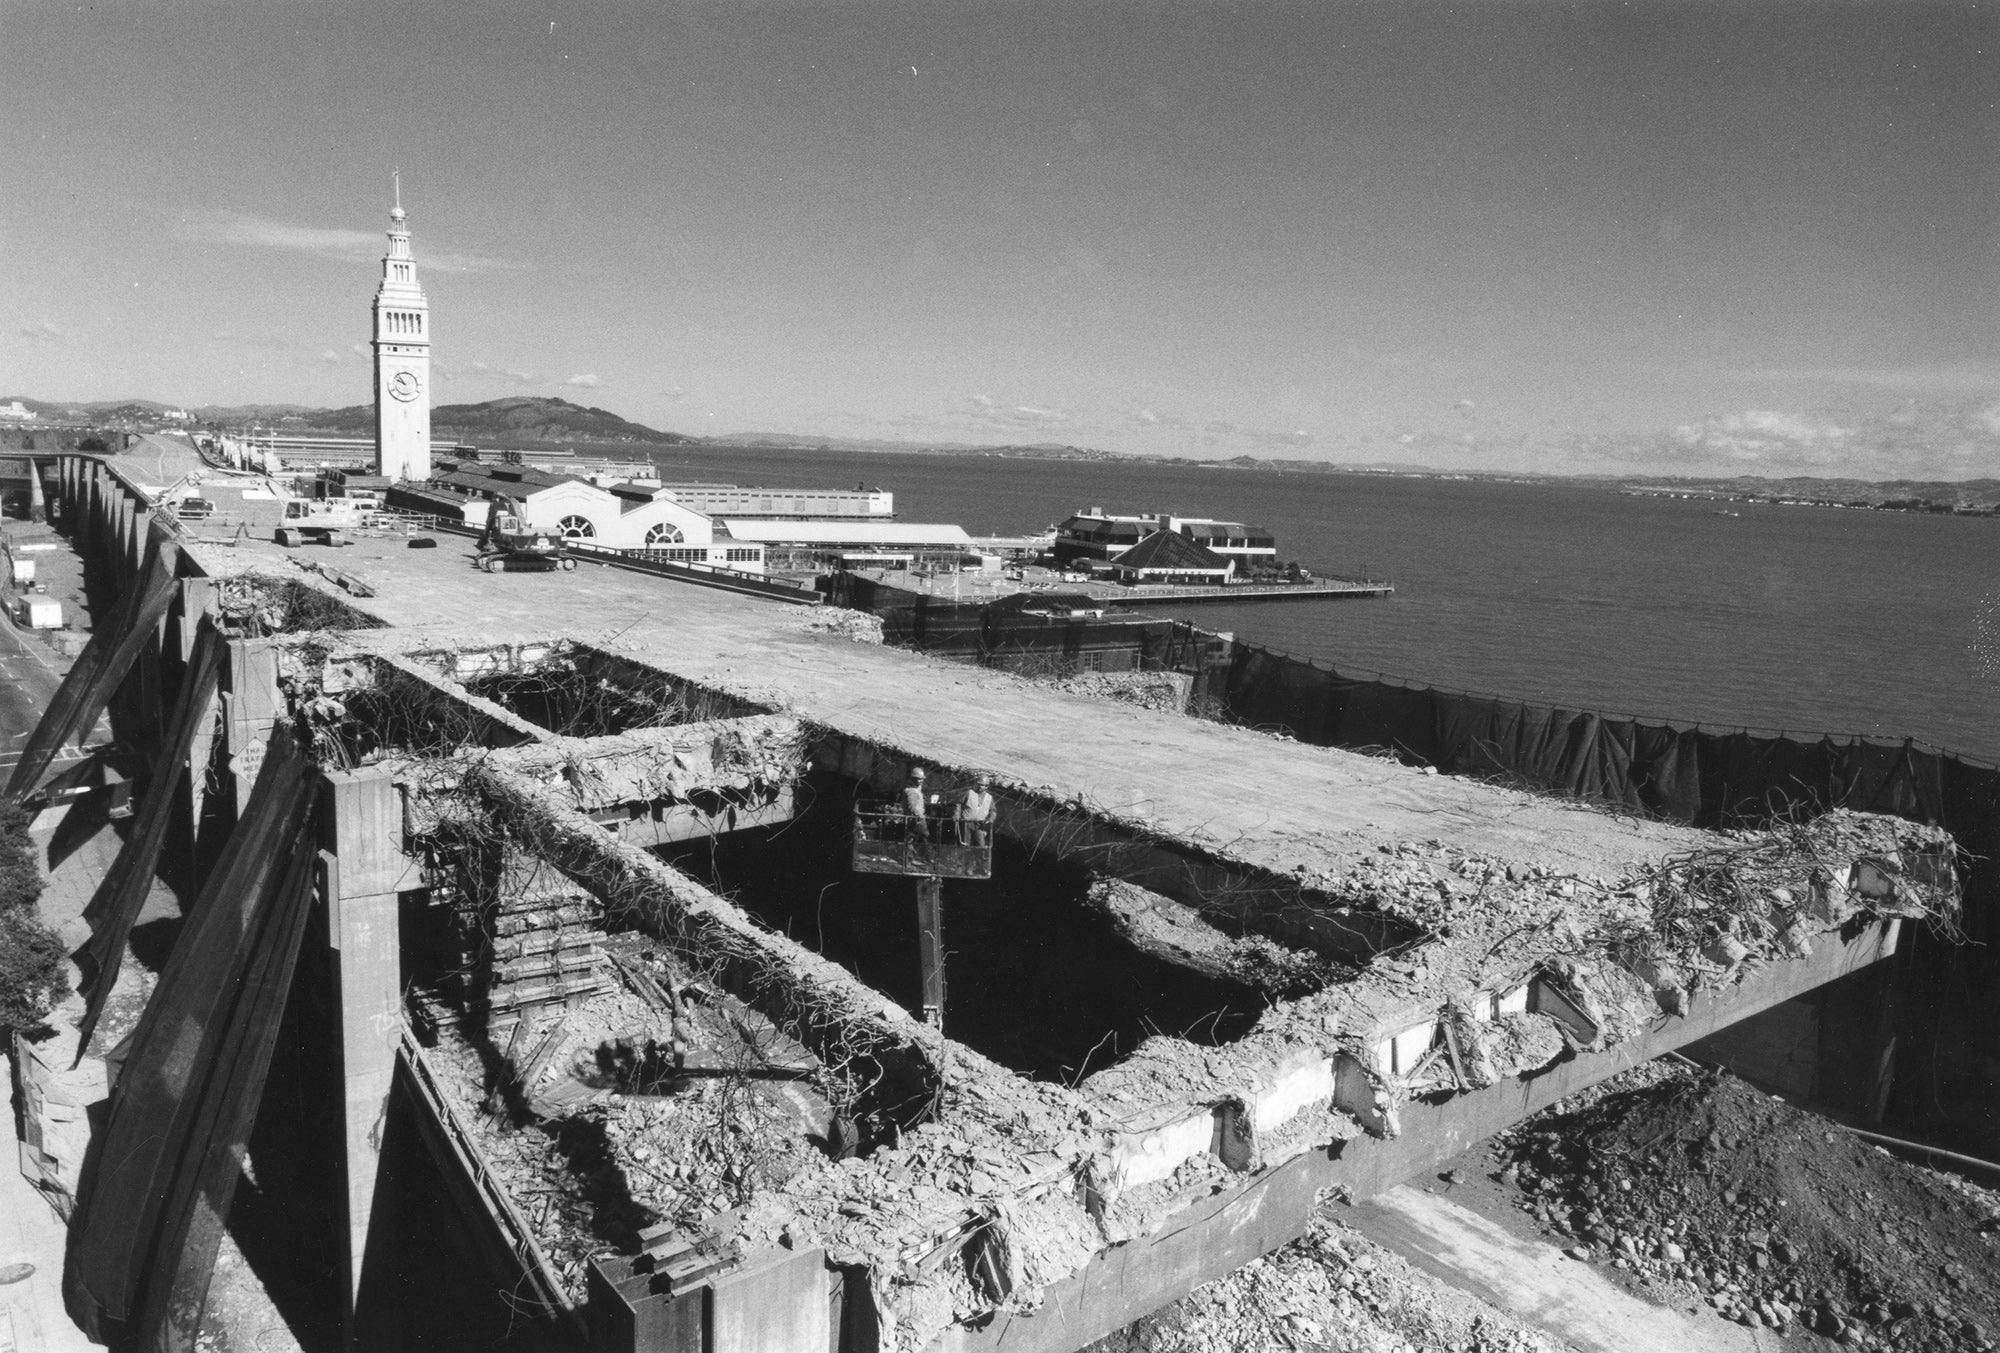 The Embarcadero Freeway was demolished after the quake.